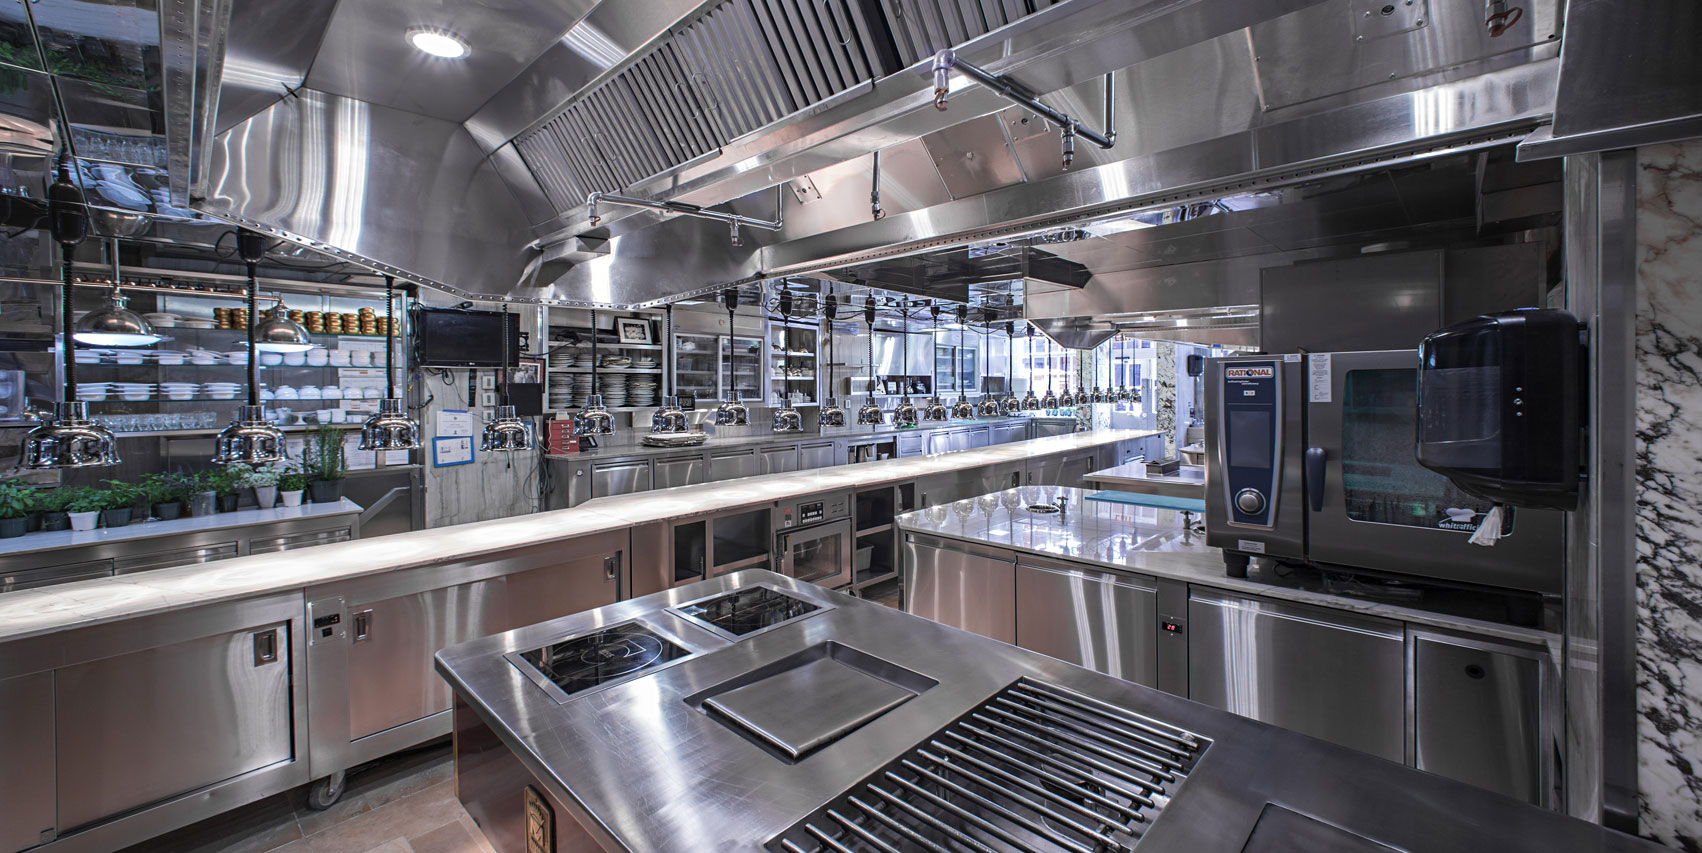 New kitchen design bouley at home for Kitchen design restaurant